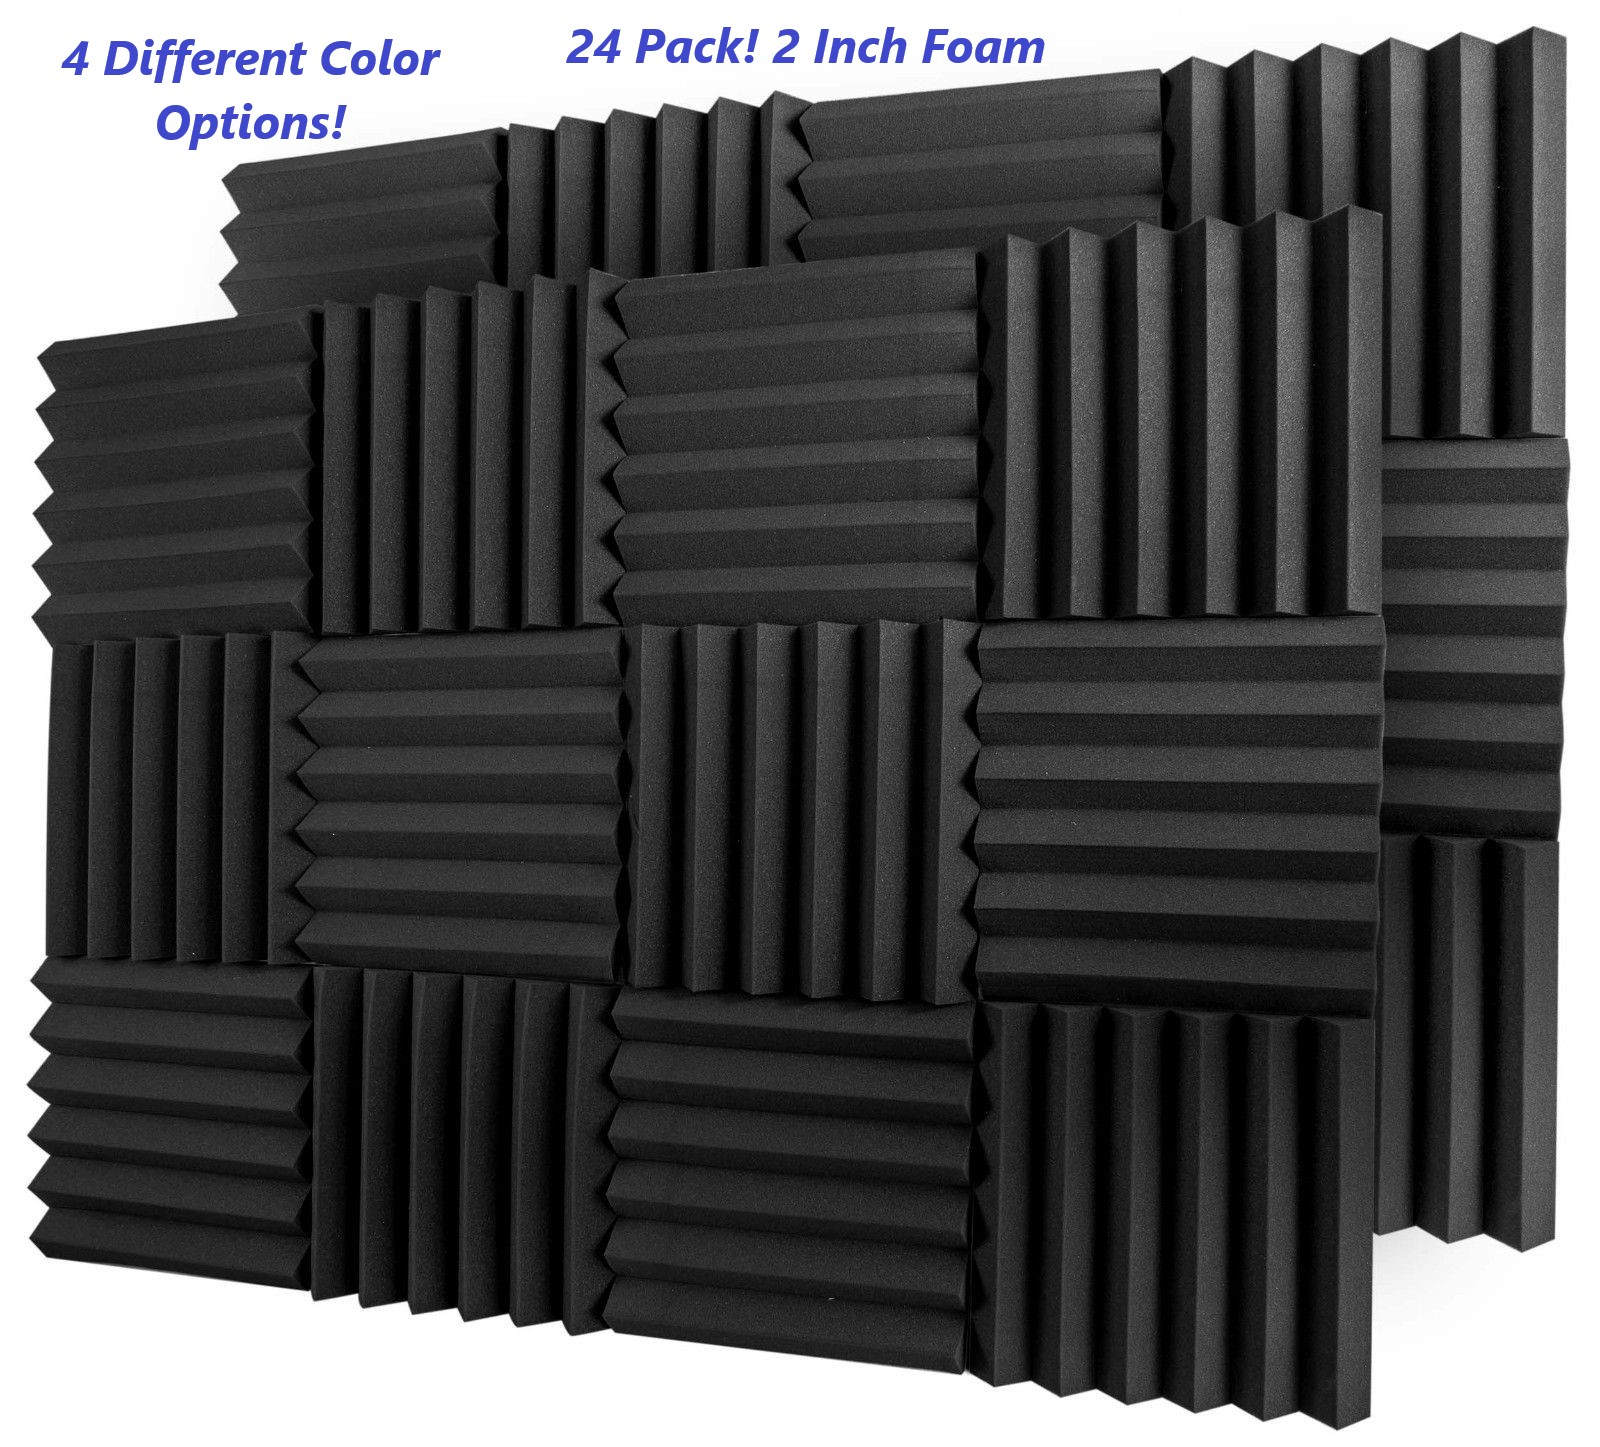 24 Pack Acoustic Foam Tiles Wall Record Studio Sound Proof ...